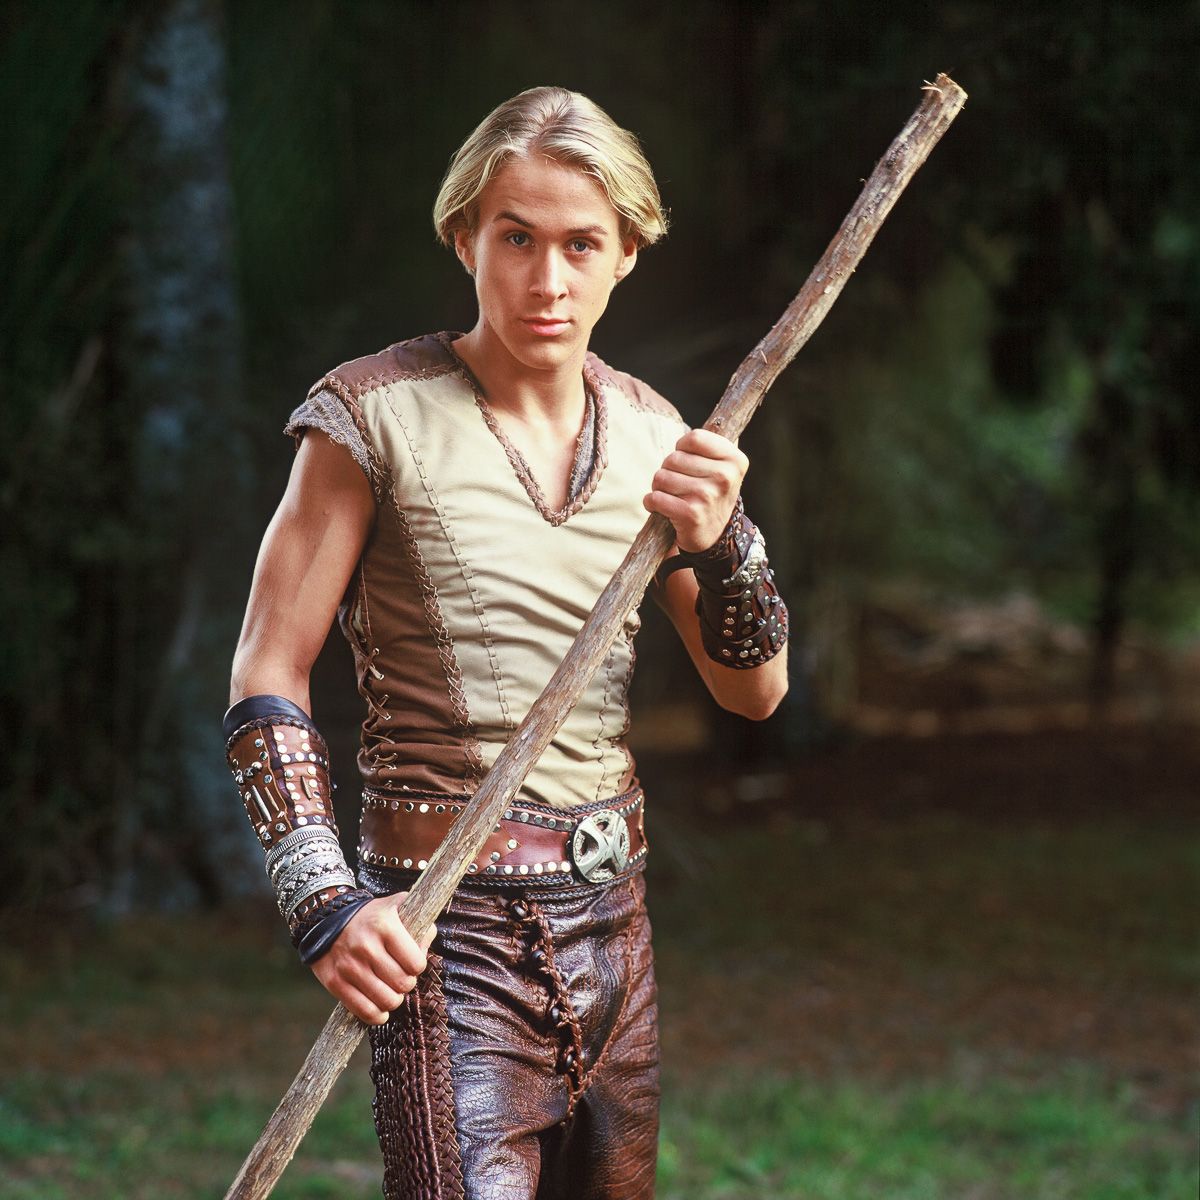 Ryan Gosling as Young Hercules, 1999.